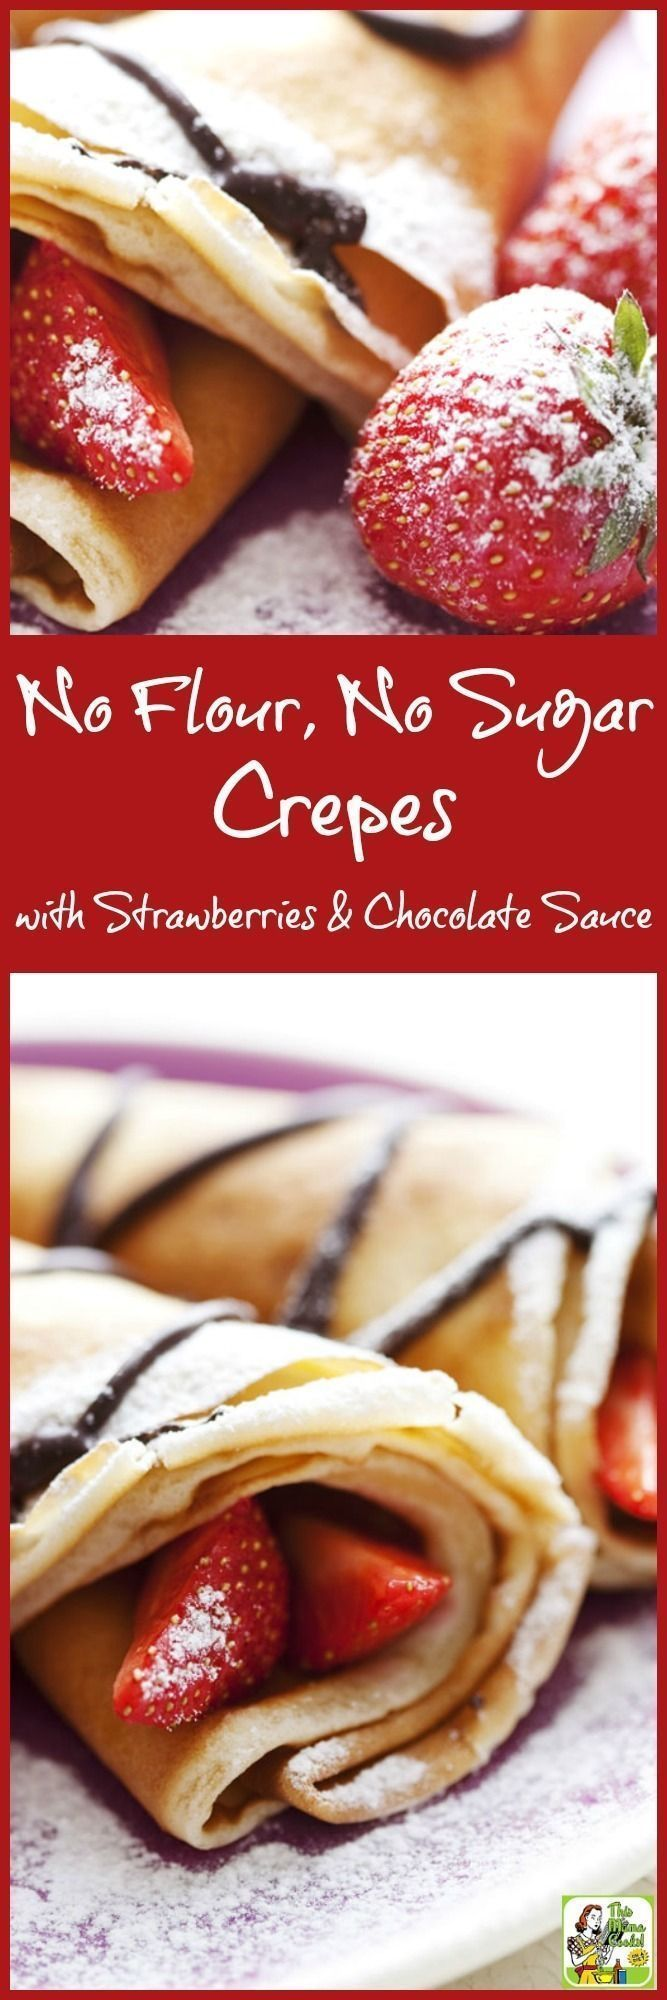 Looking for a gluten free crepe recipe? Try this easy No Flour, No Sugar Crepes ...  - Gluten Free